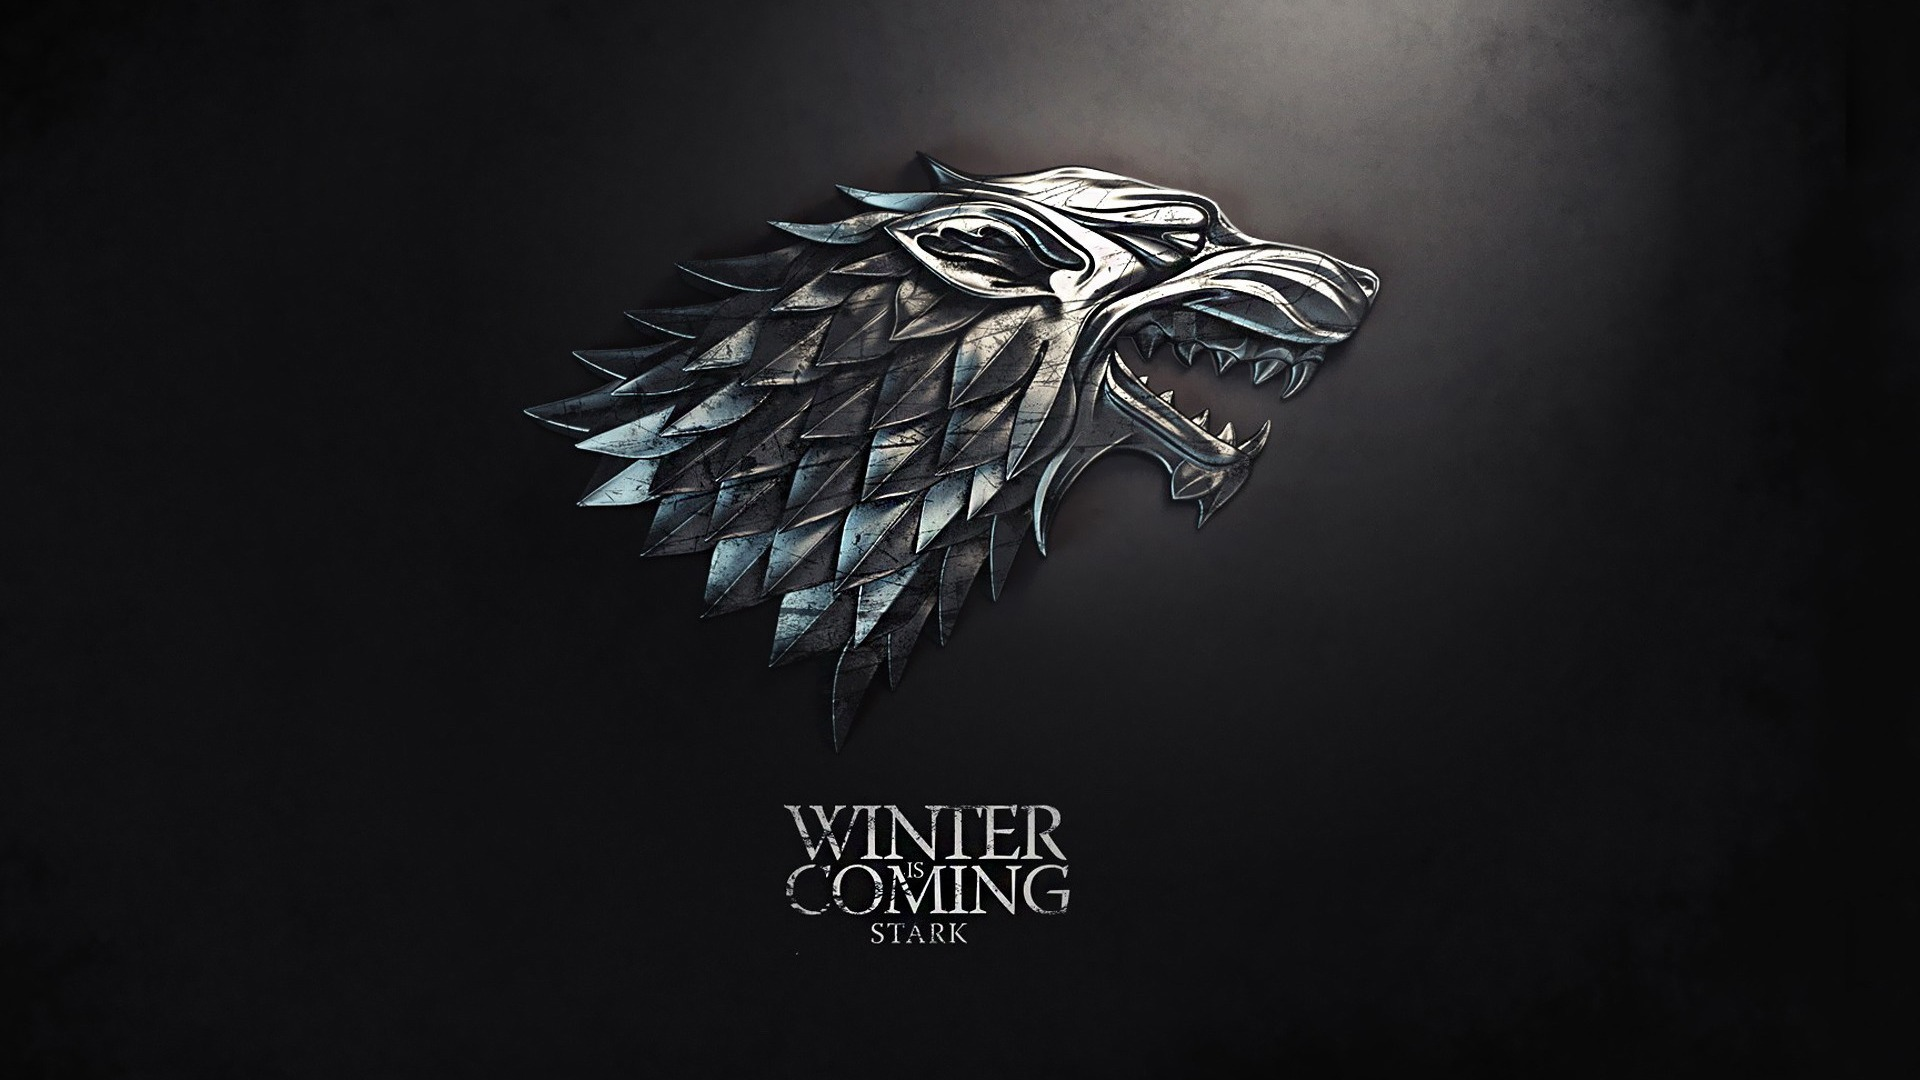 Fonds dcran Game Of Thrones tous les wallpapers Game Of Thrones 1920x1080